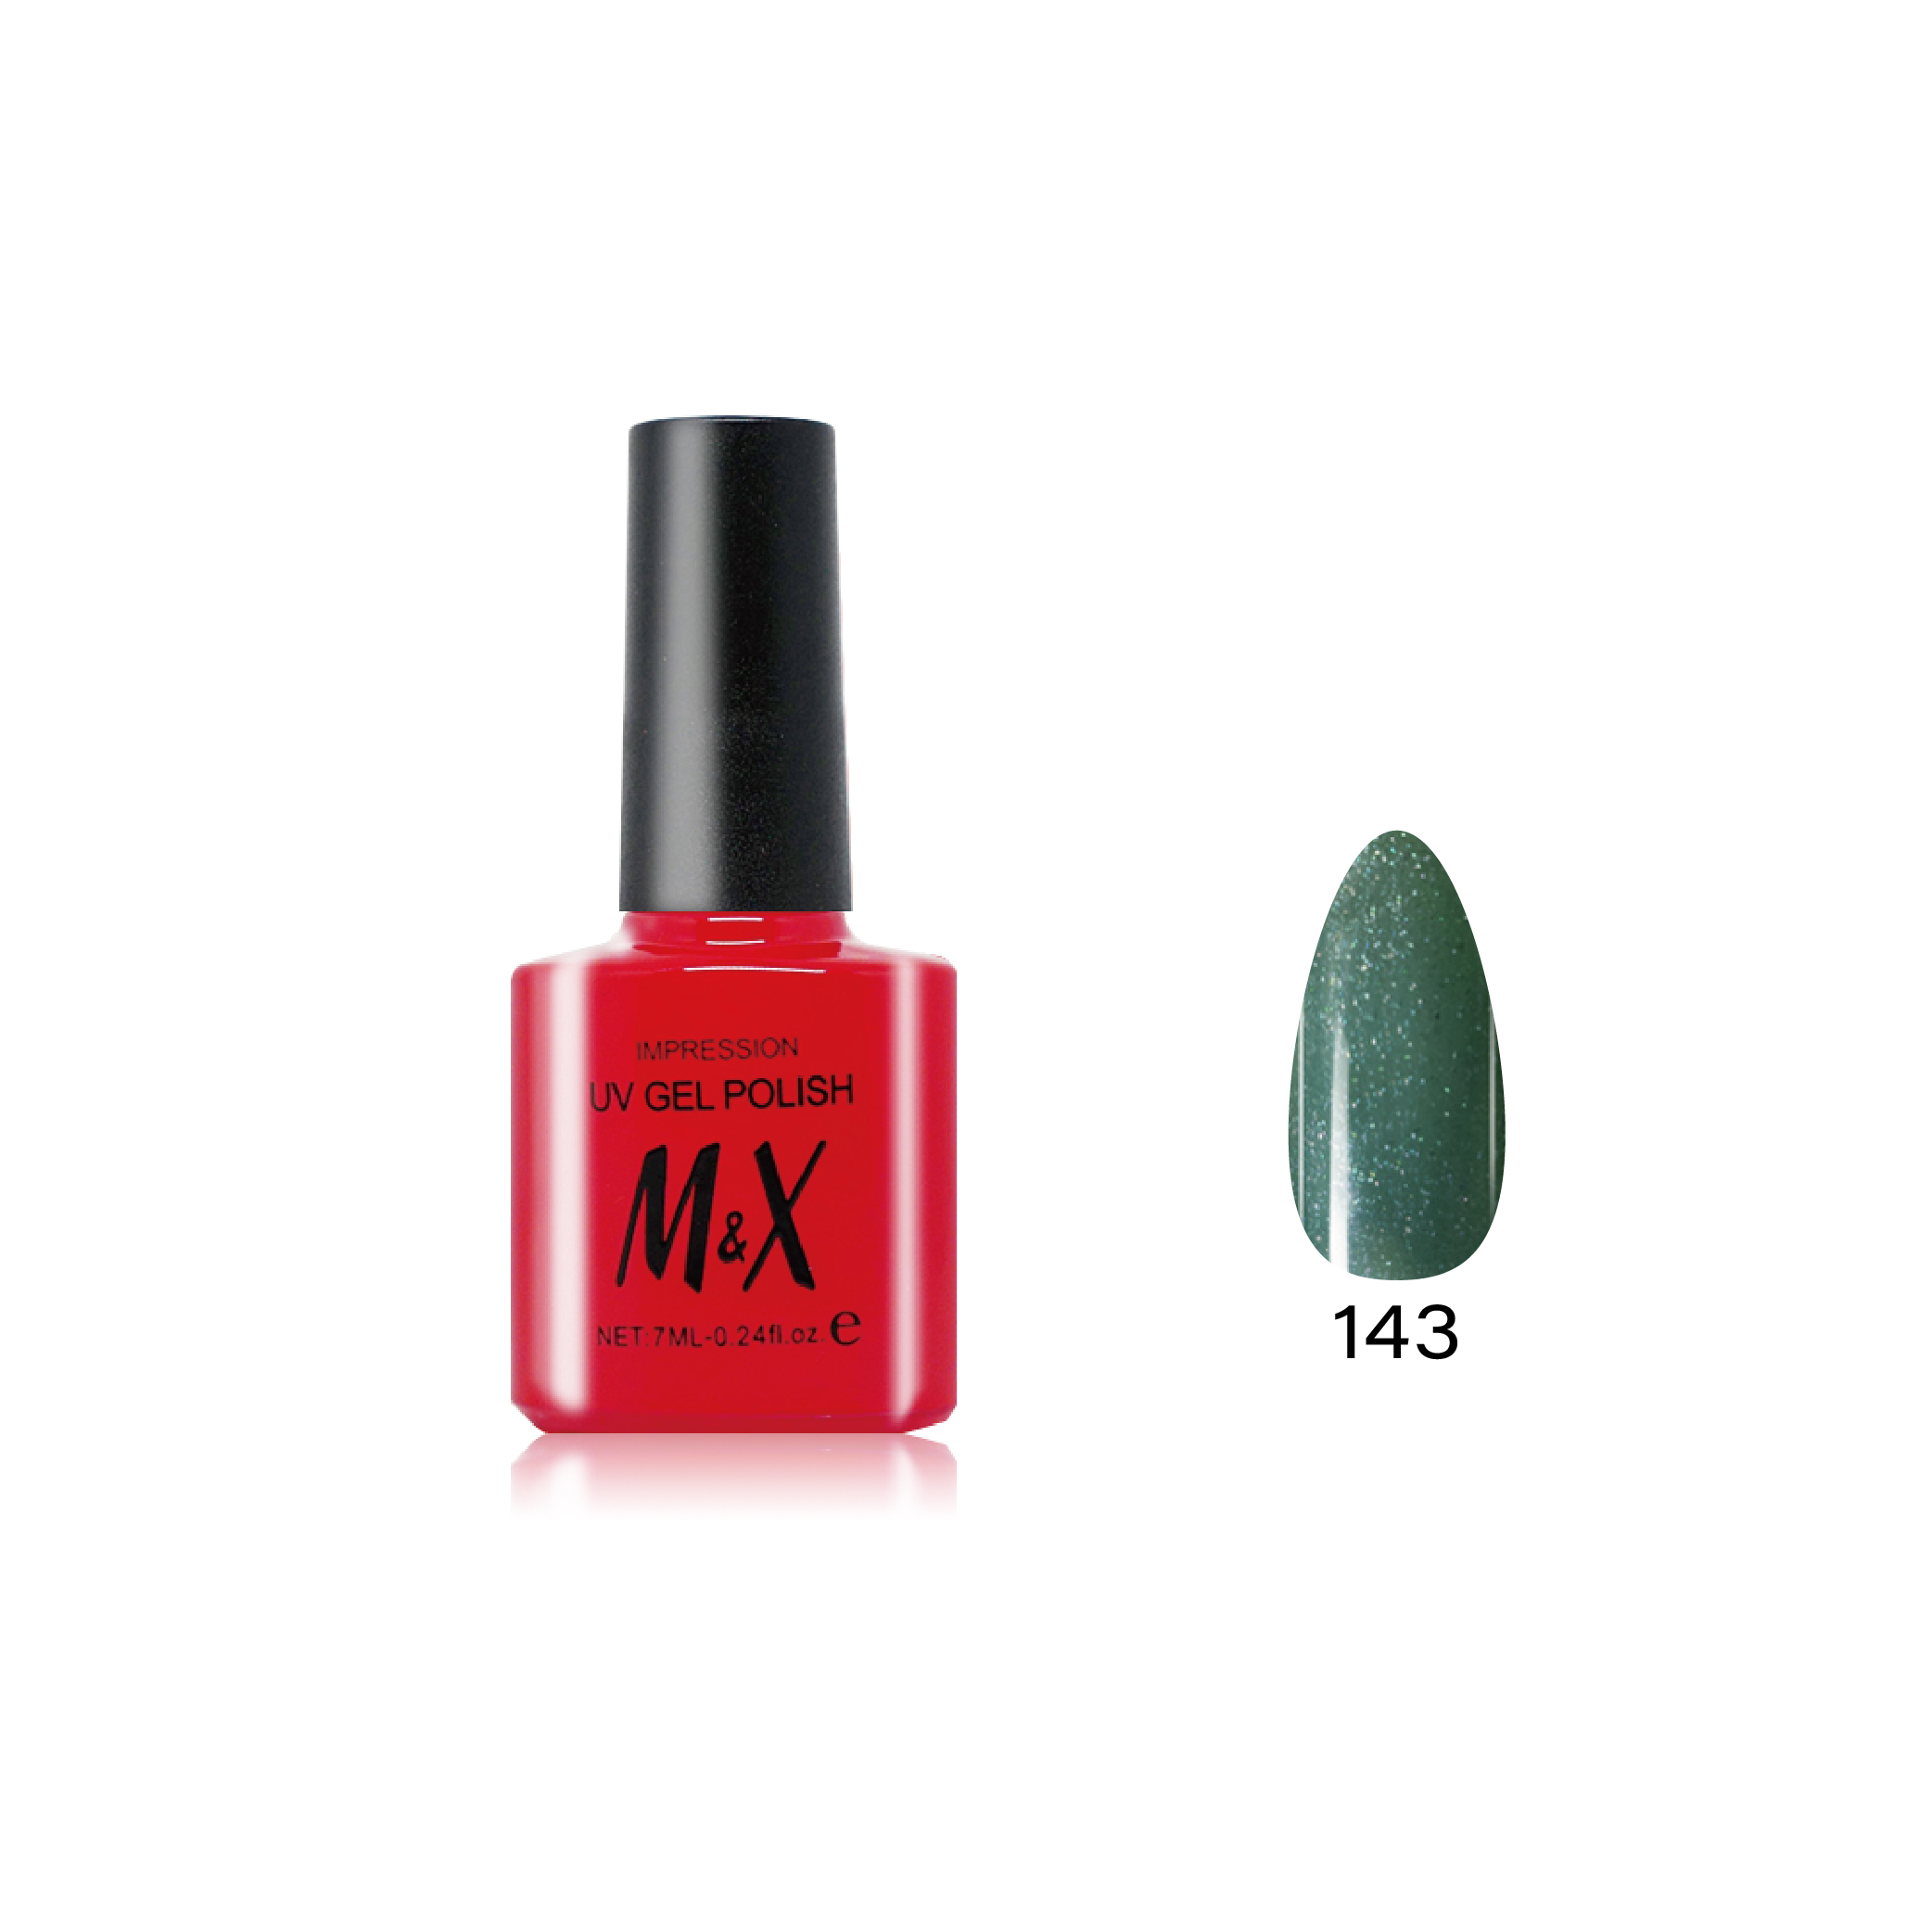 M&X UV-Led Gel Nail Polish Classic Collection - Nail Art Manicure Gel Nail Polish|The Wizard Of Oz